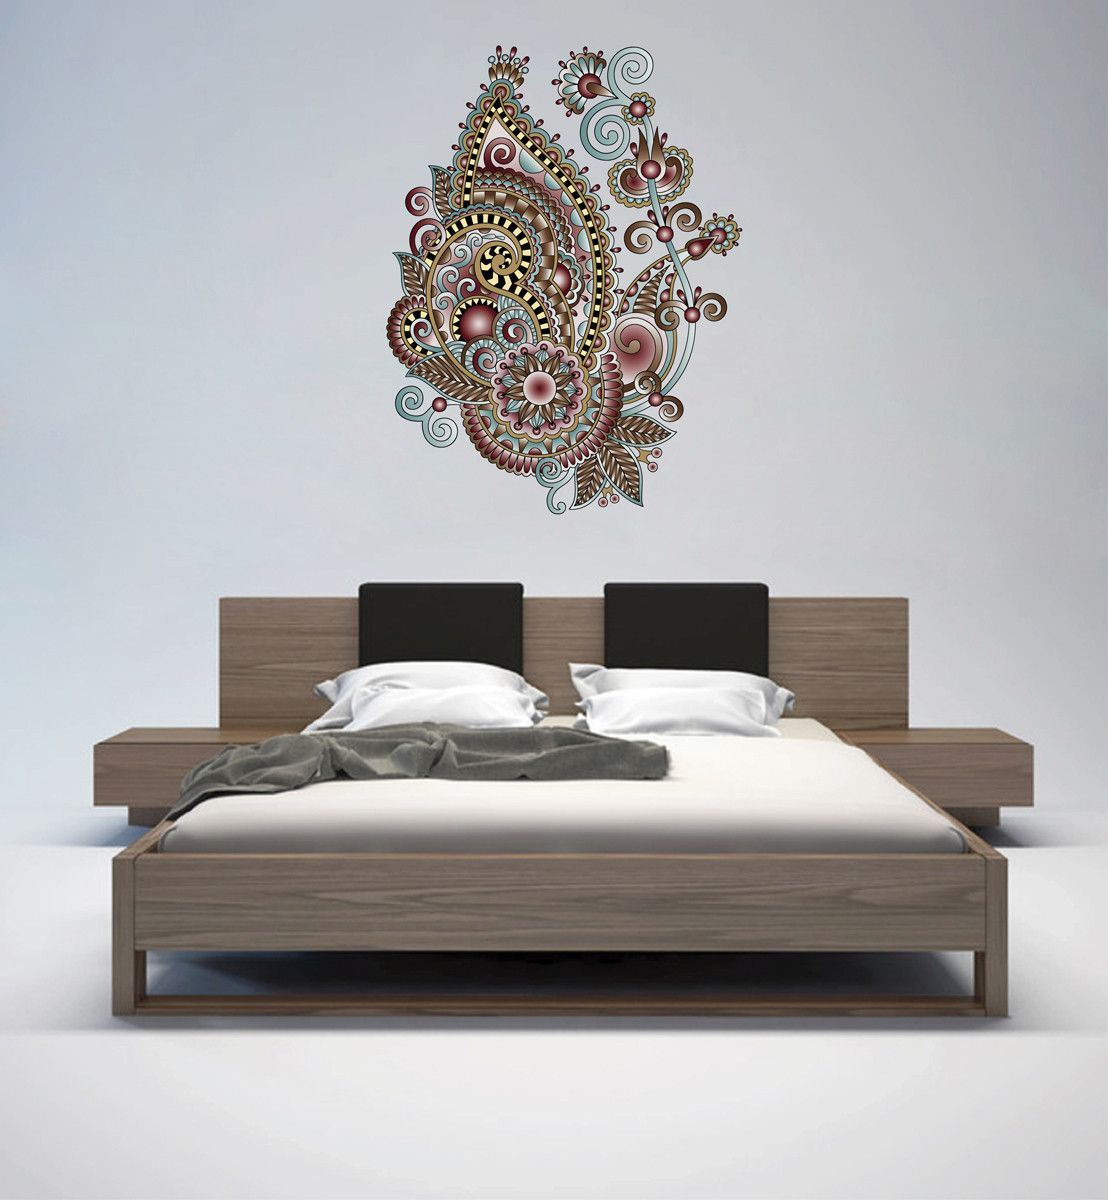 cik128 Full Color Wall decal flower decoration Indian living room bedroom